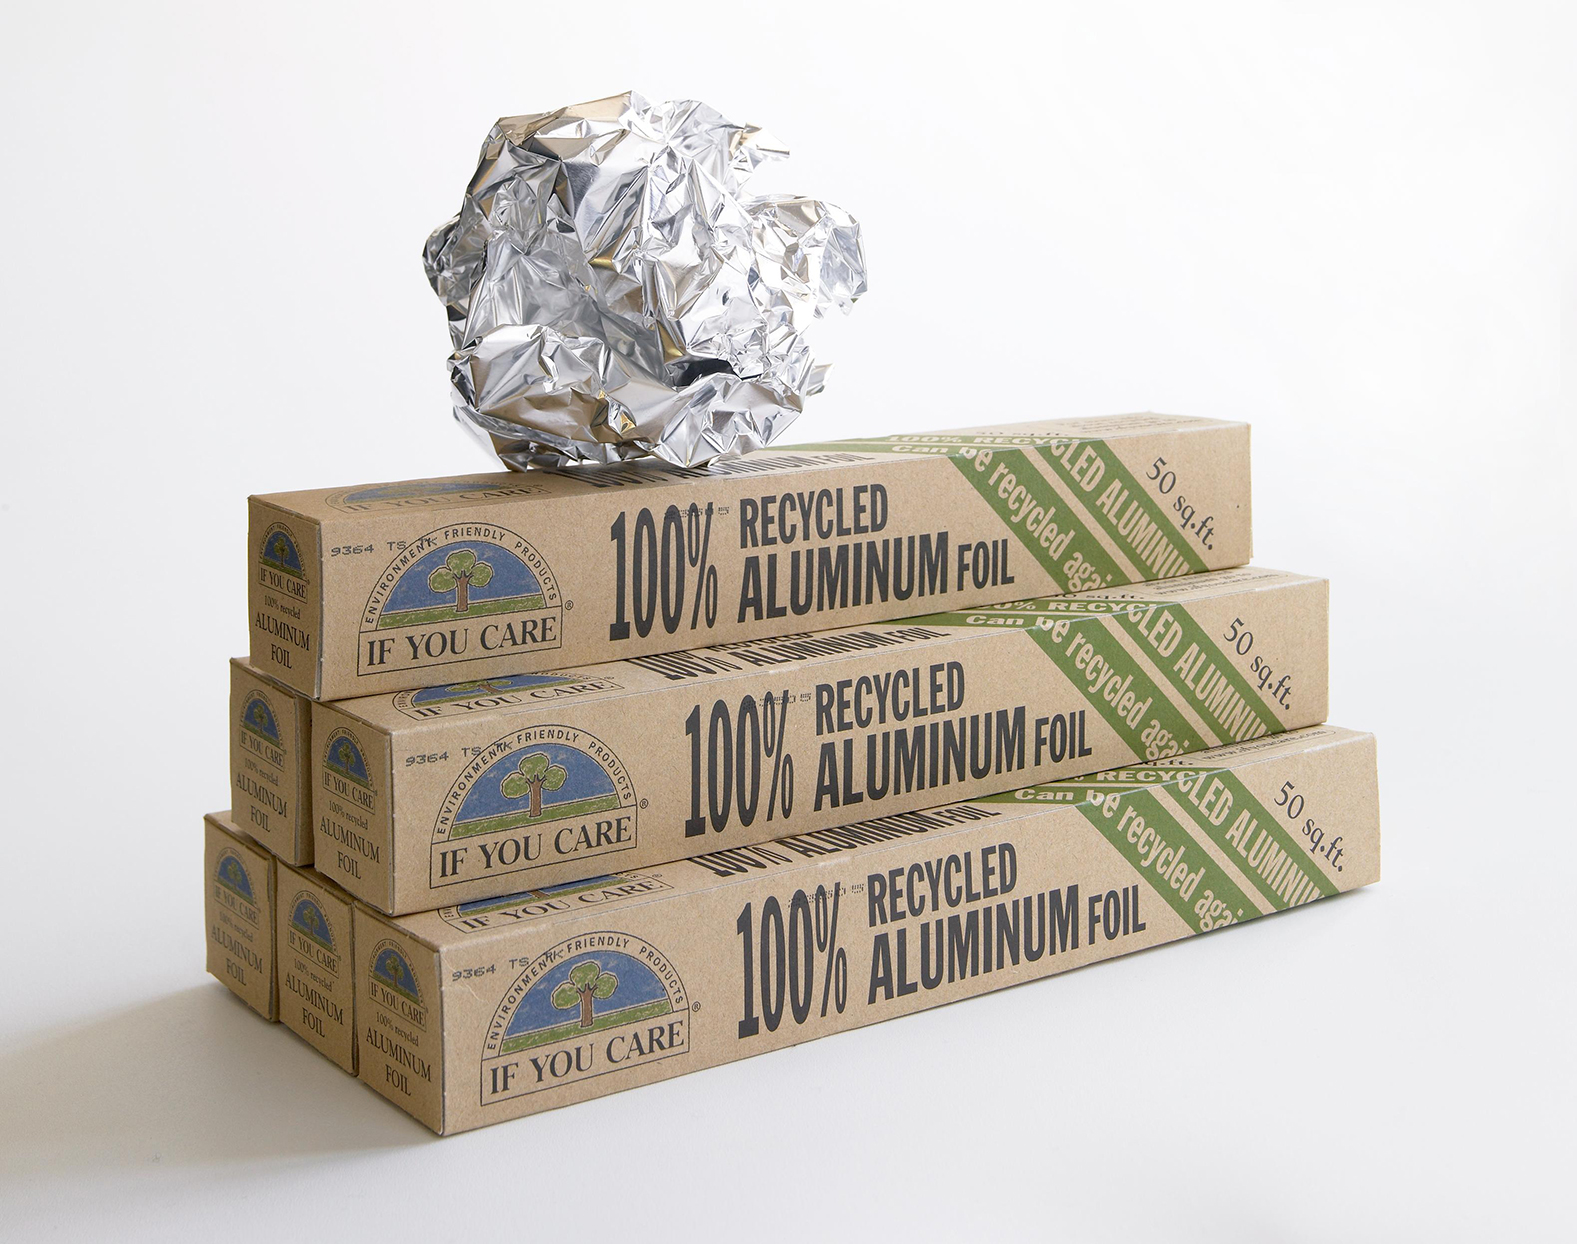 packages of recycled aluminum foil for makeshift grill brush